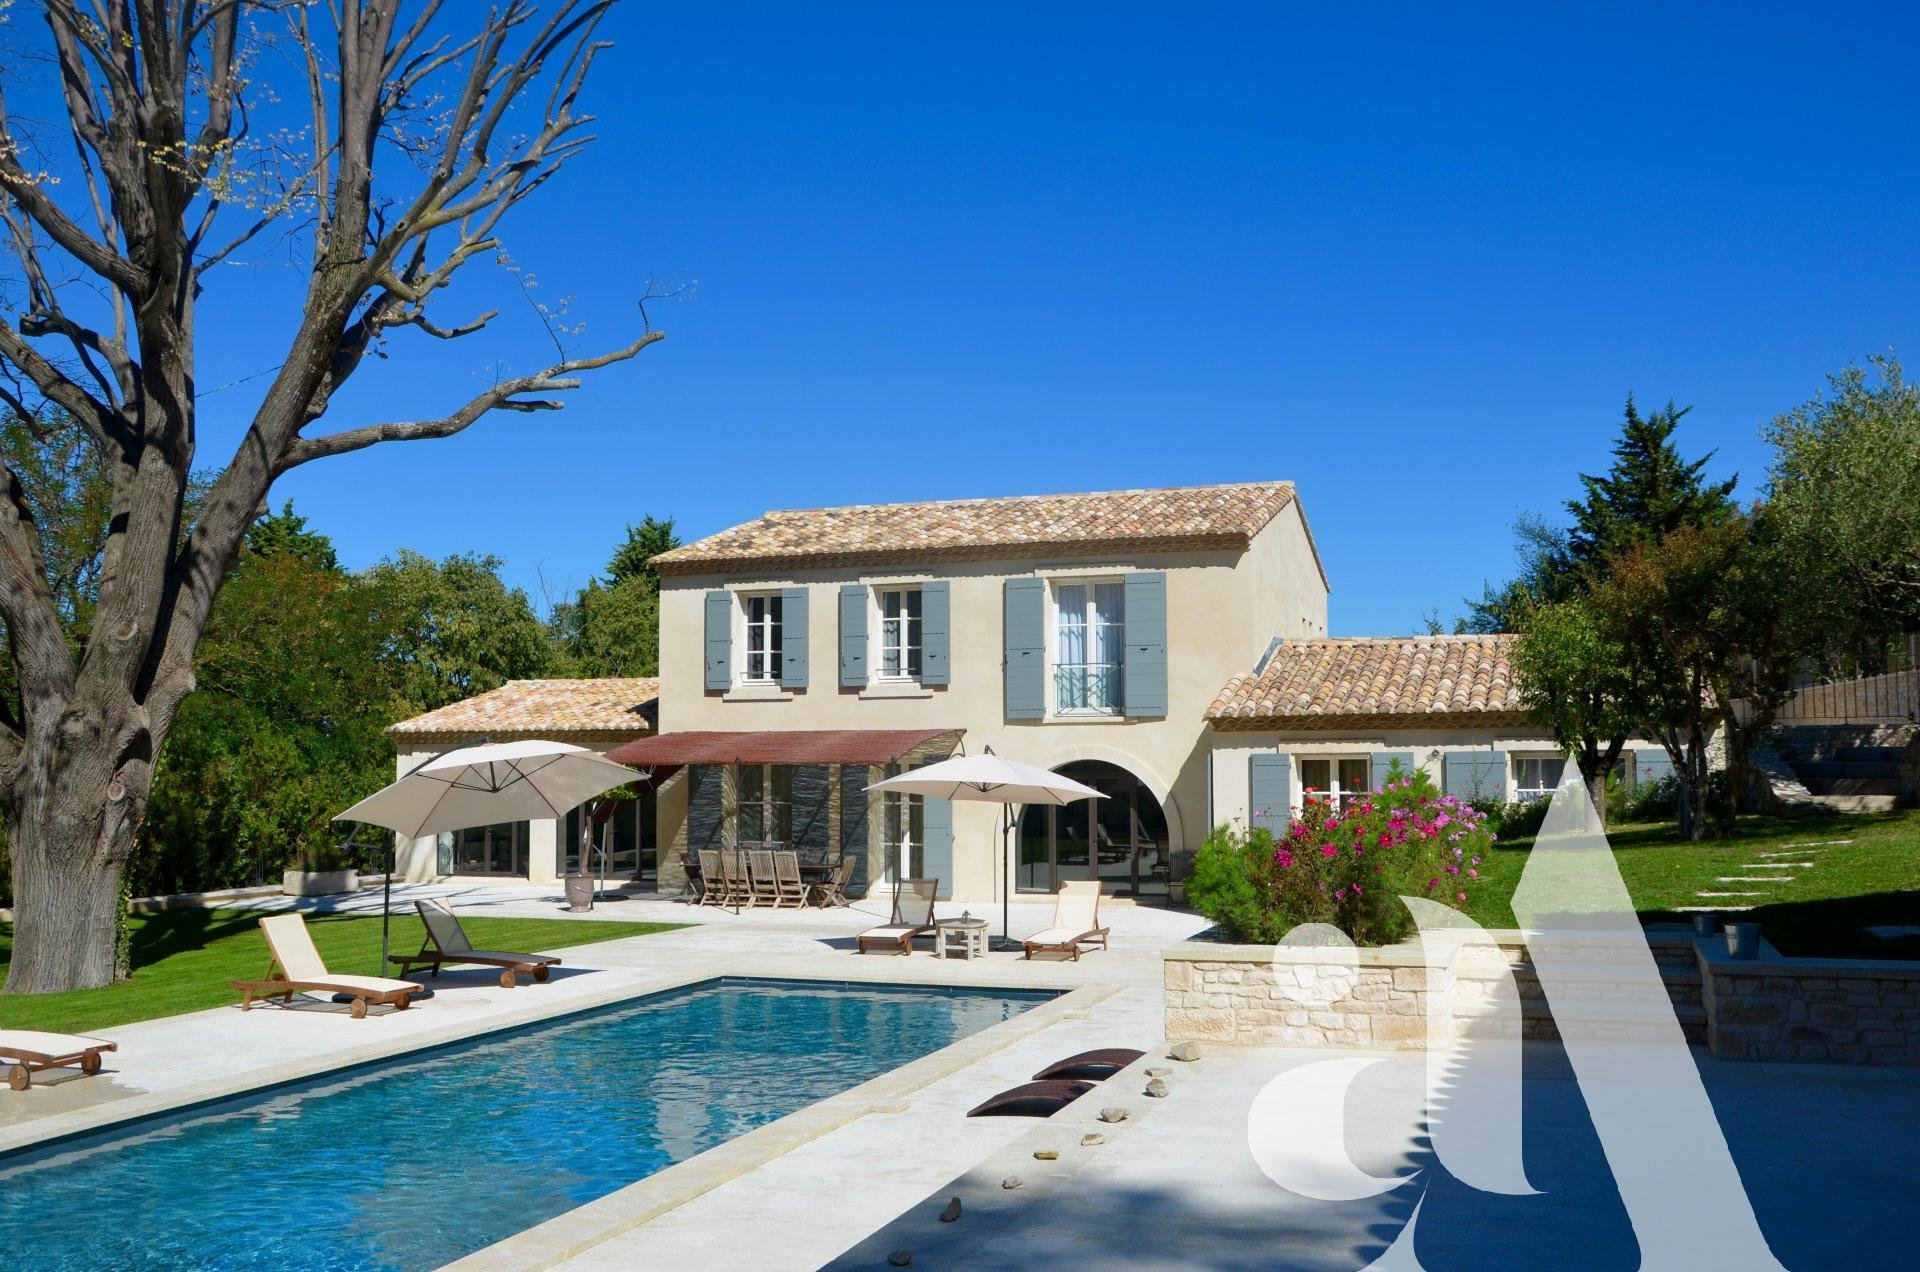 FRIENDS MAS - Saint-Remy de Provence - Alpilles - Provence - 5 BEDROOMS - 10 PEOPLE